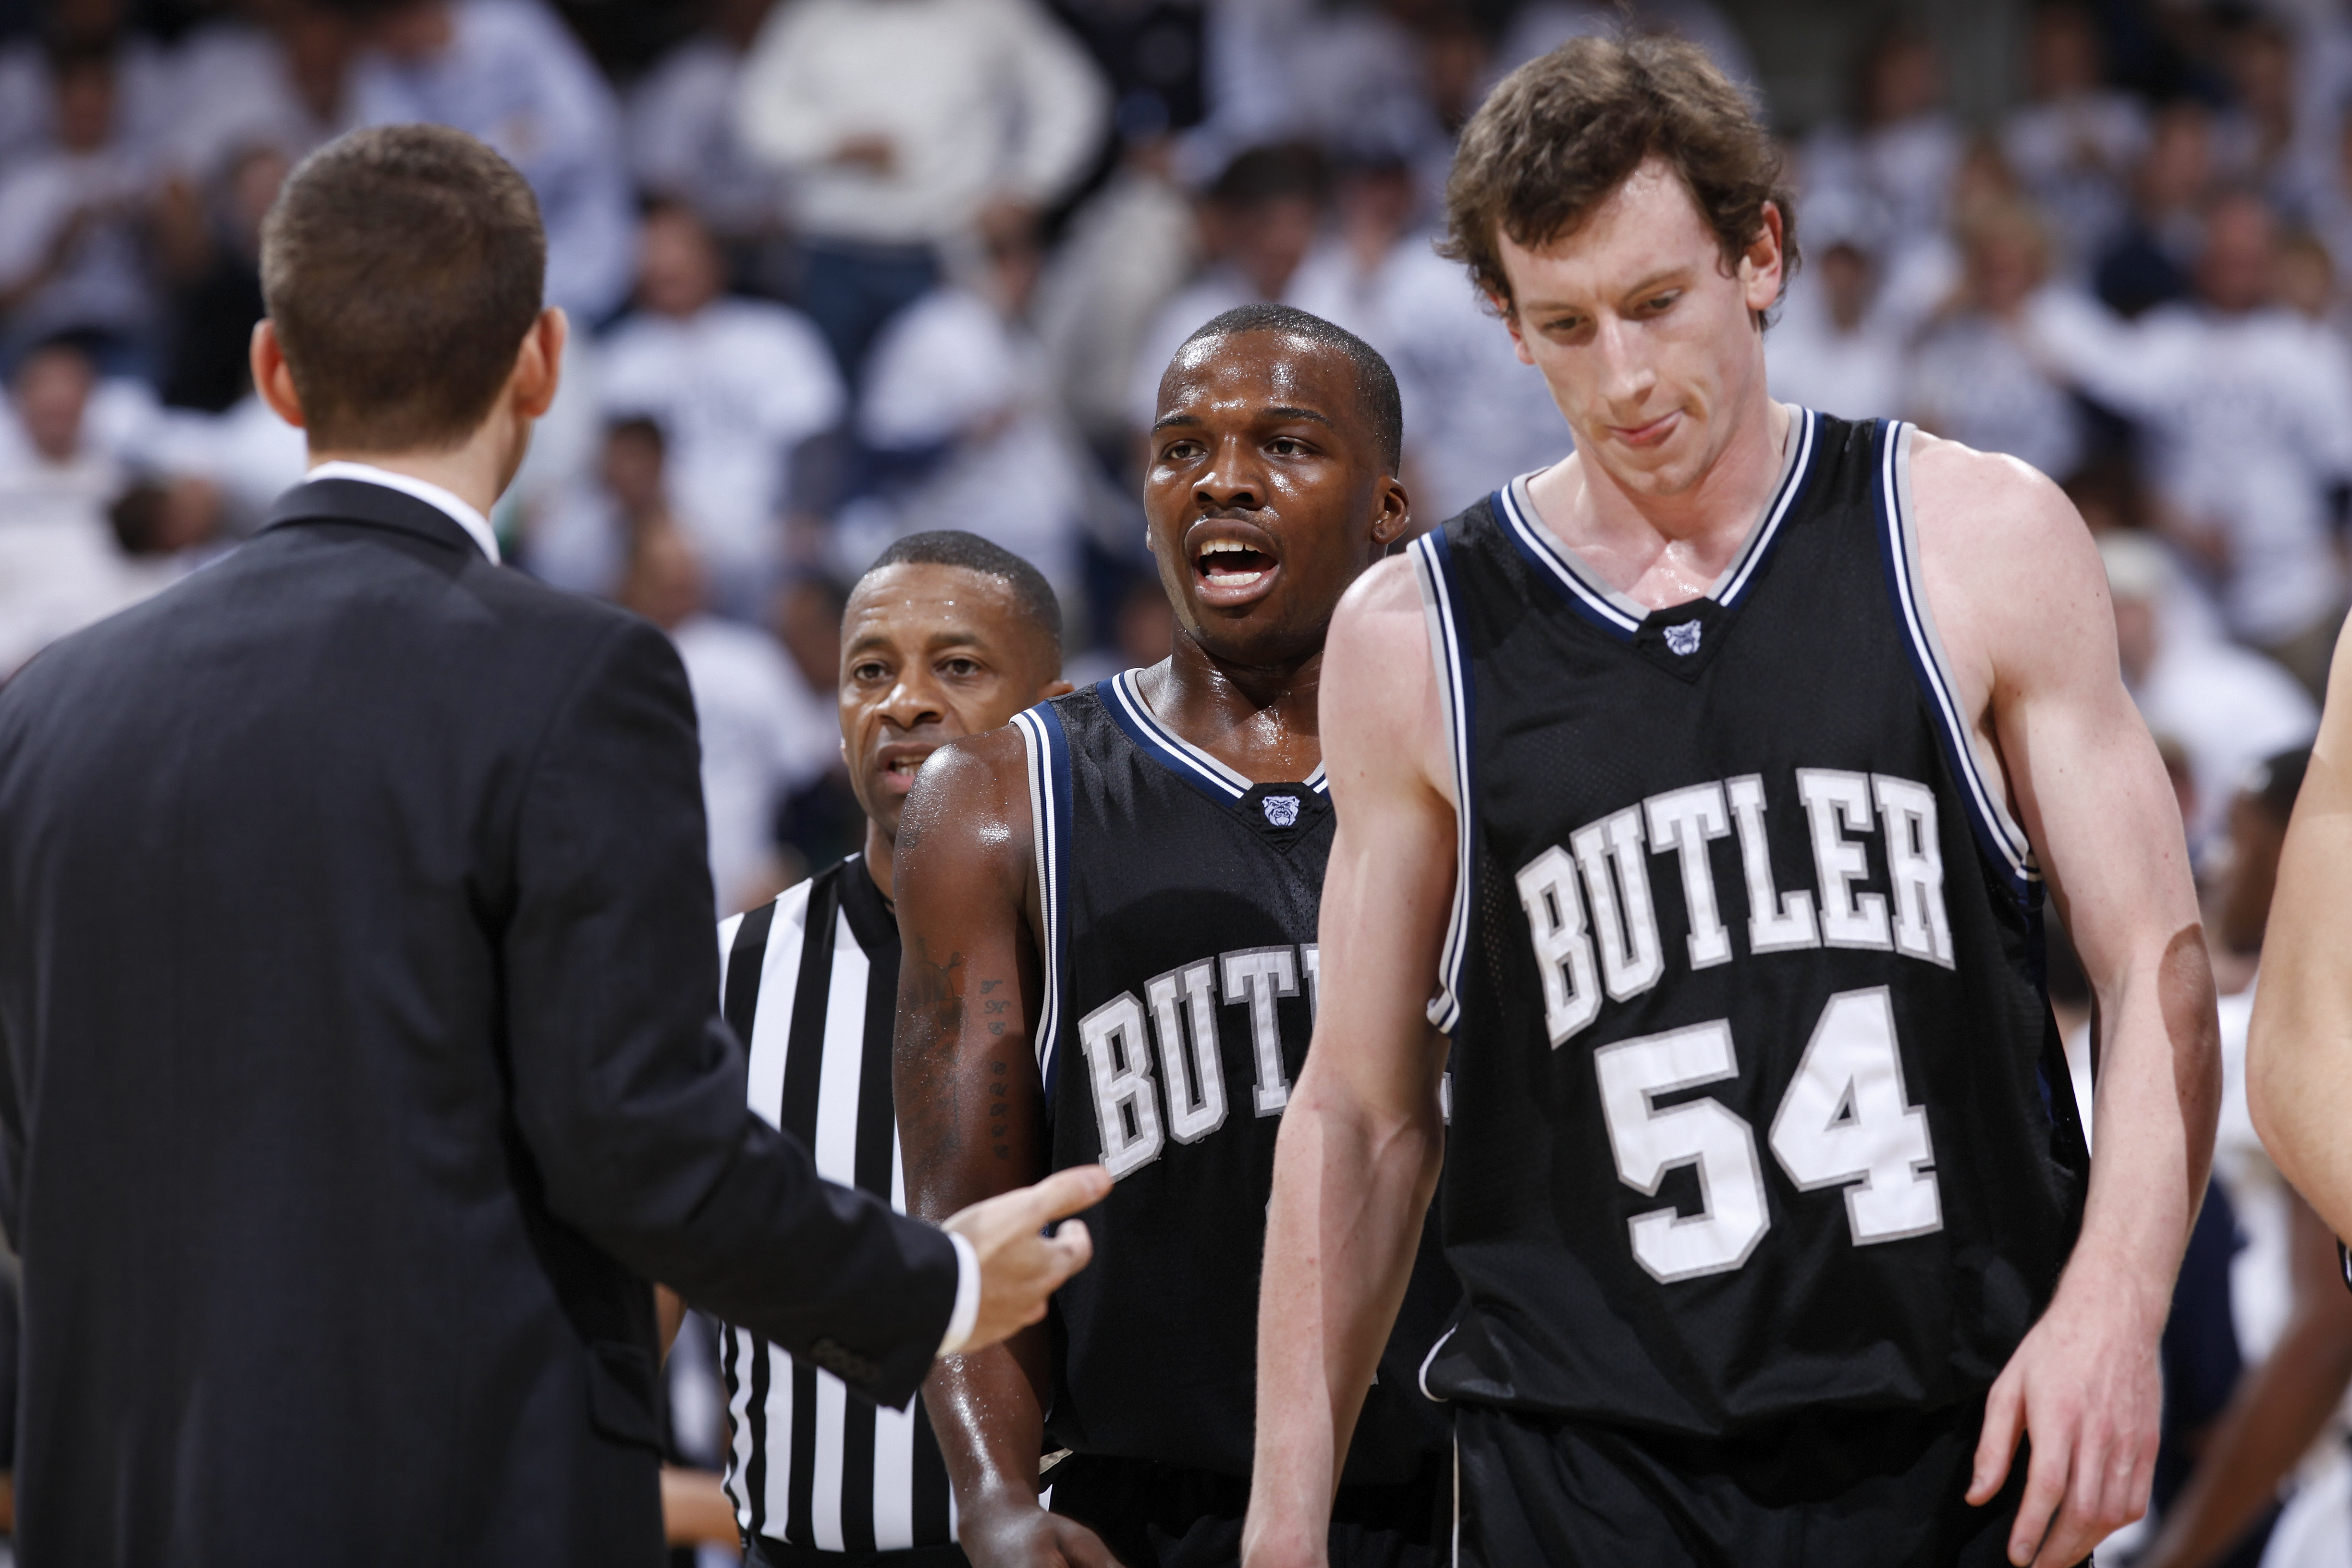 CINCINNATI, OH - DECEMBER 9: Shelvin Mack #1 and Matt Howard #54 of the Butler Bulldogs come off the floor during a timeout in the game against the Xavier Musketeers at Cintas Center on December 9, 2010 in Cincinnati, Ohio. Xavier defeated Butler 51-49. (